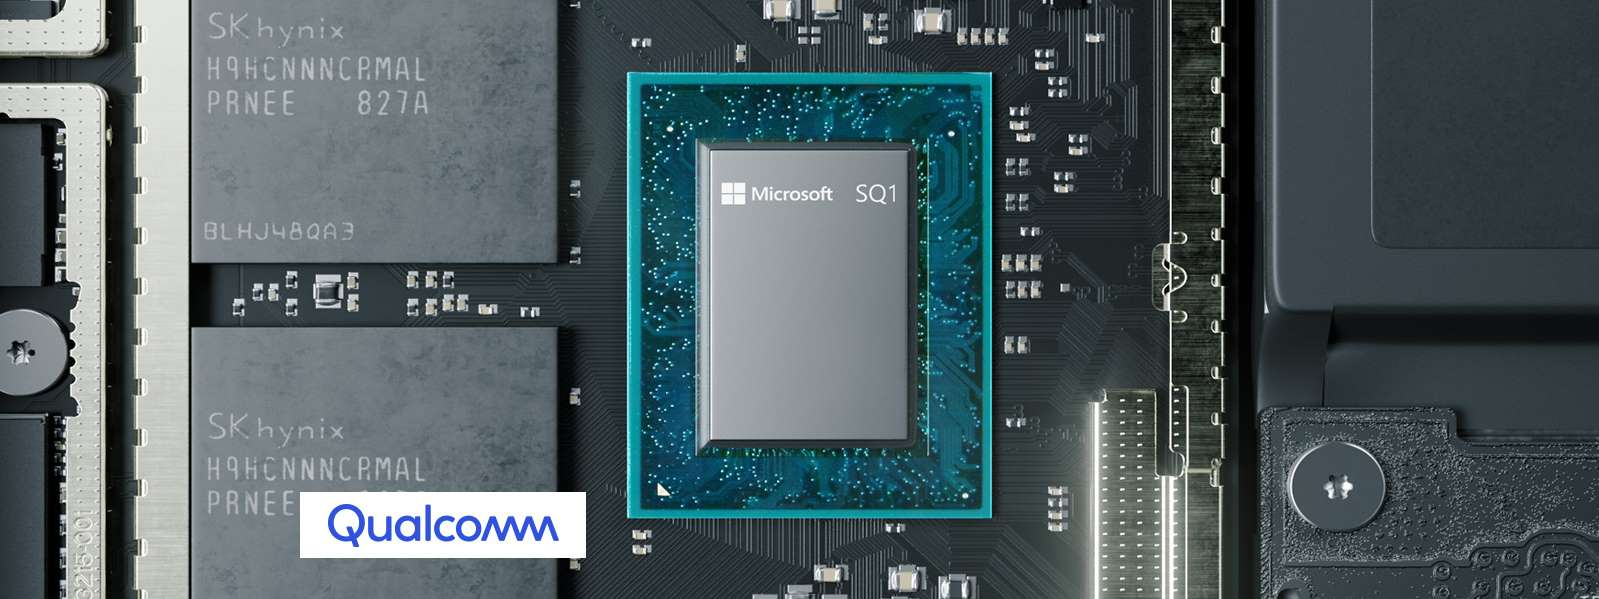 Microsoft collaborated with Qualcomm on the SQ1 processor in its Surface Pro X laptops.